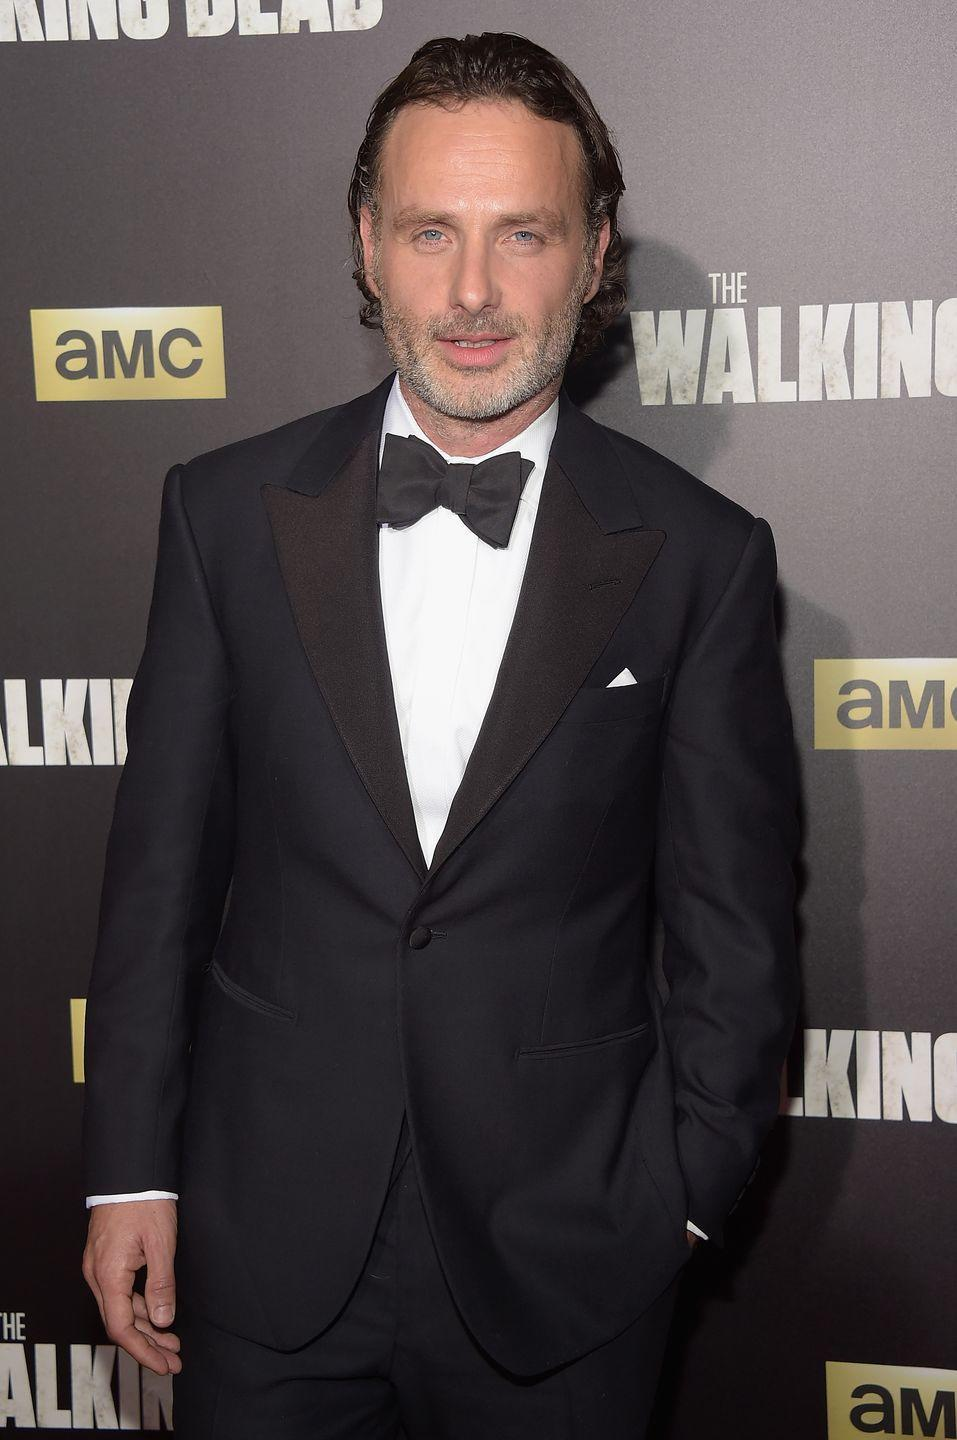 "<p>Fans didn't see it coming when Andrew Lincoln's character, Rick Grimes, was injured, rescued, and presumed dead in 2018. Lincoln <a href=""https://www.hollywoodreporter.com/live-feed/walking-dead-ricks-fate-revealed-as-andrew-lincolns-character-will-be-spun-1157341"" rel=""nofollow noopener"" target=""_blank"" data-ylk=""slk:asked to leave the hit AMC drama"" class=""link rapid-noclick-resp"">asked to leave the hit AMC drama</a> to spend more time with his family. But the complexity of his write-off allowed him to reprise his role in a <a href=""https://www.hollywoodreporter.com/live-feed/walking-dead-ricks-fate-revealed-as-andrew-lincolns-character-will-be-spun-1157341"" rel=""nofollow noopener"" target=""_blank"" data-ylk=""slk:spin-off"" class=""link rapid-noclick-resp"">spin-off</a>.</p>"